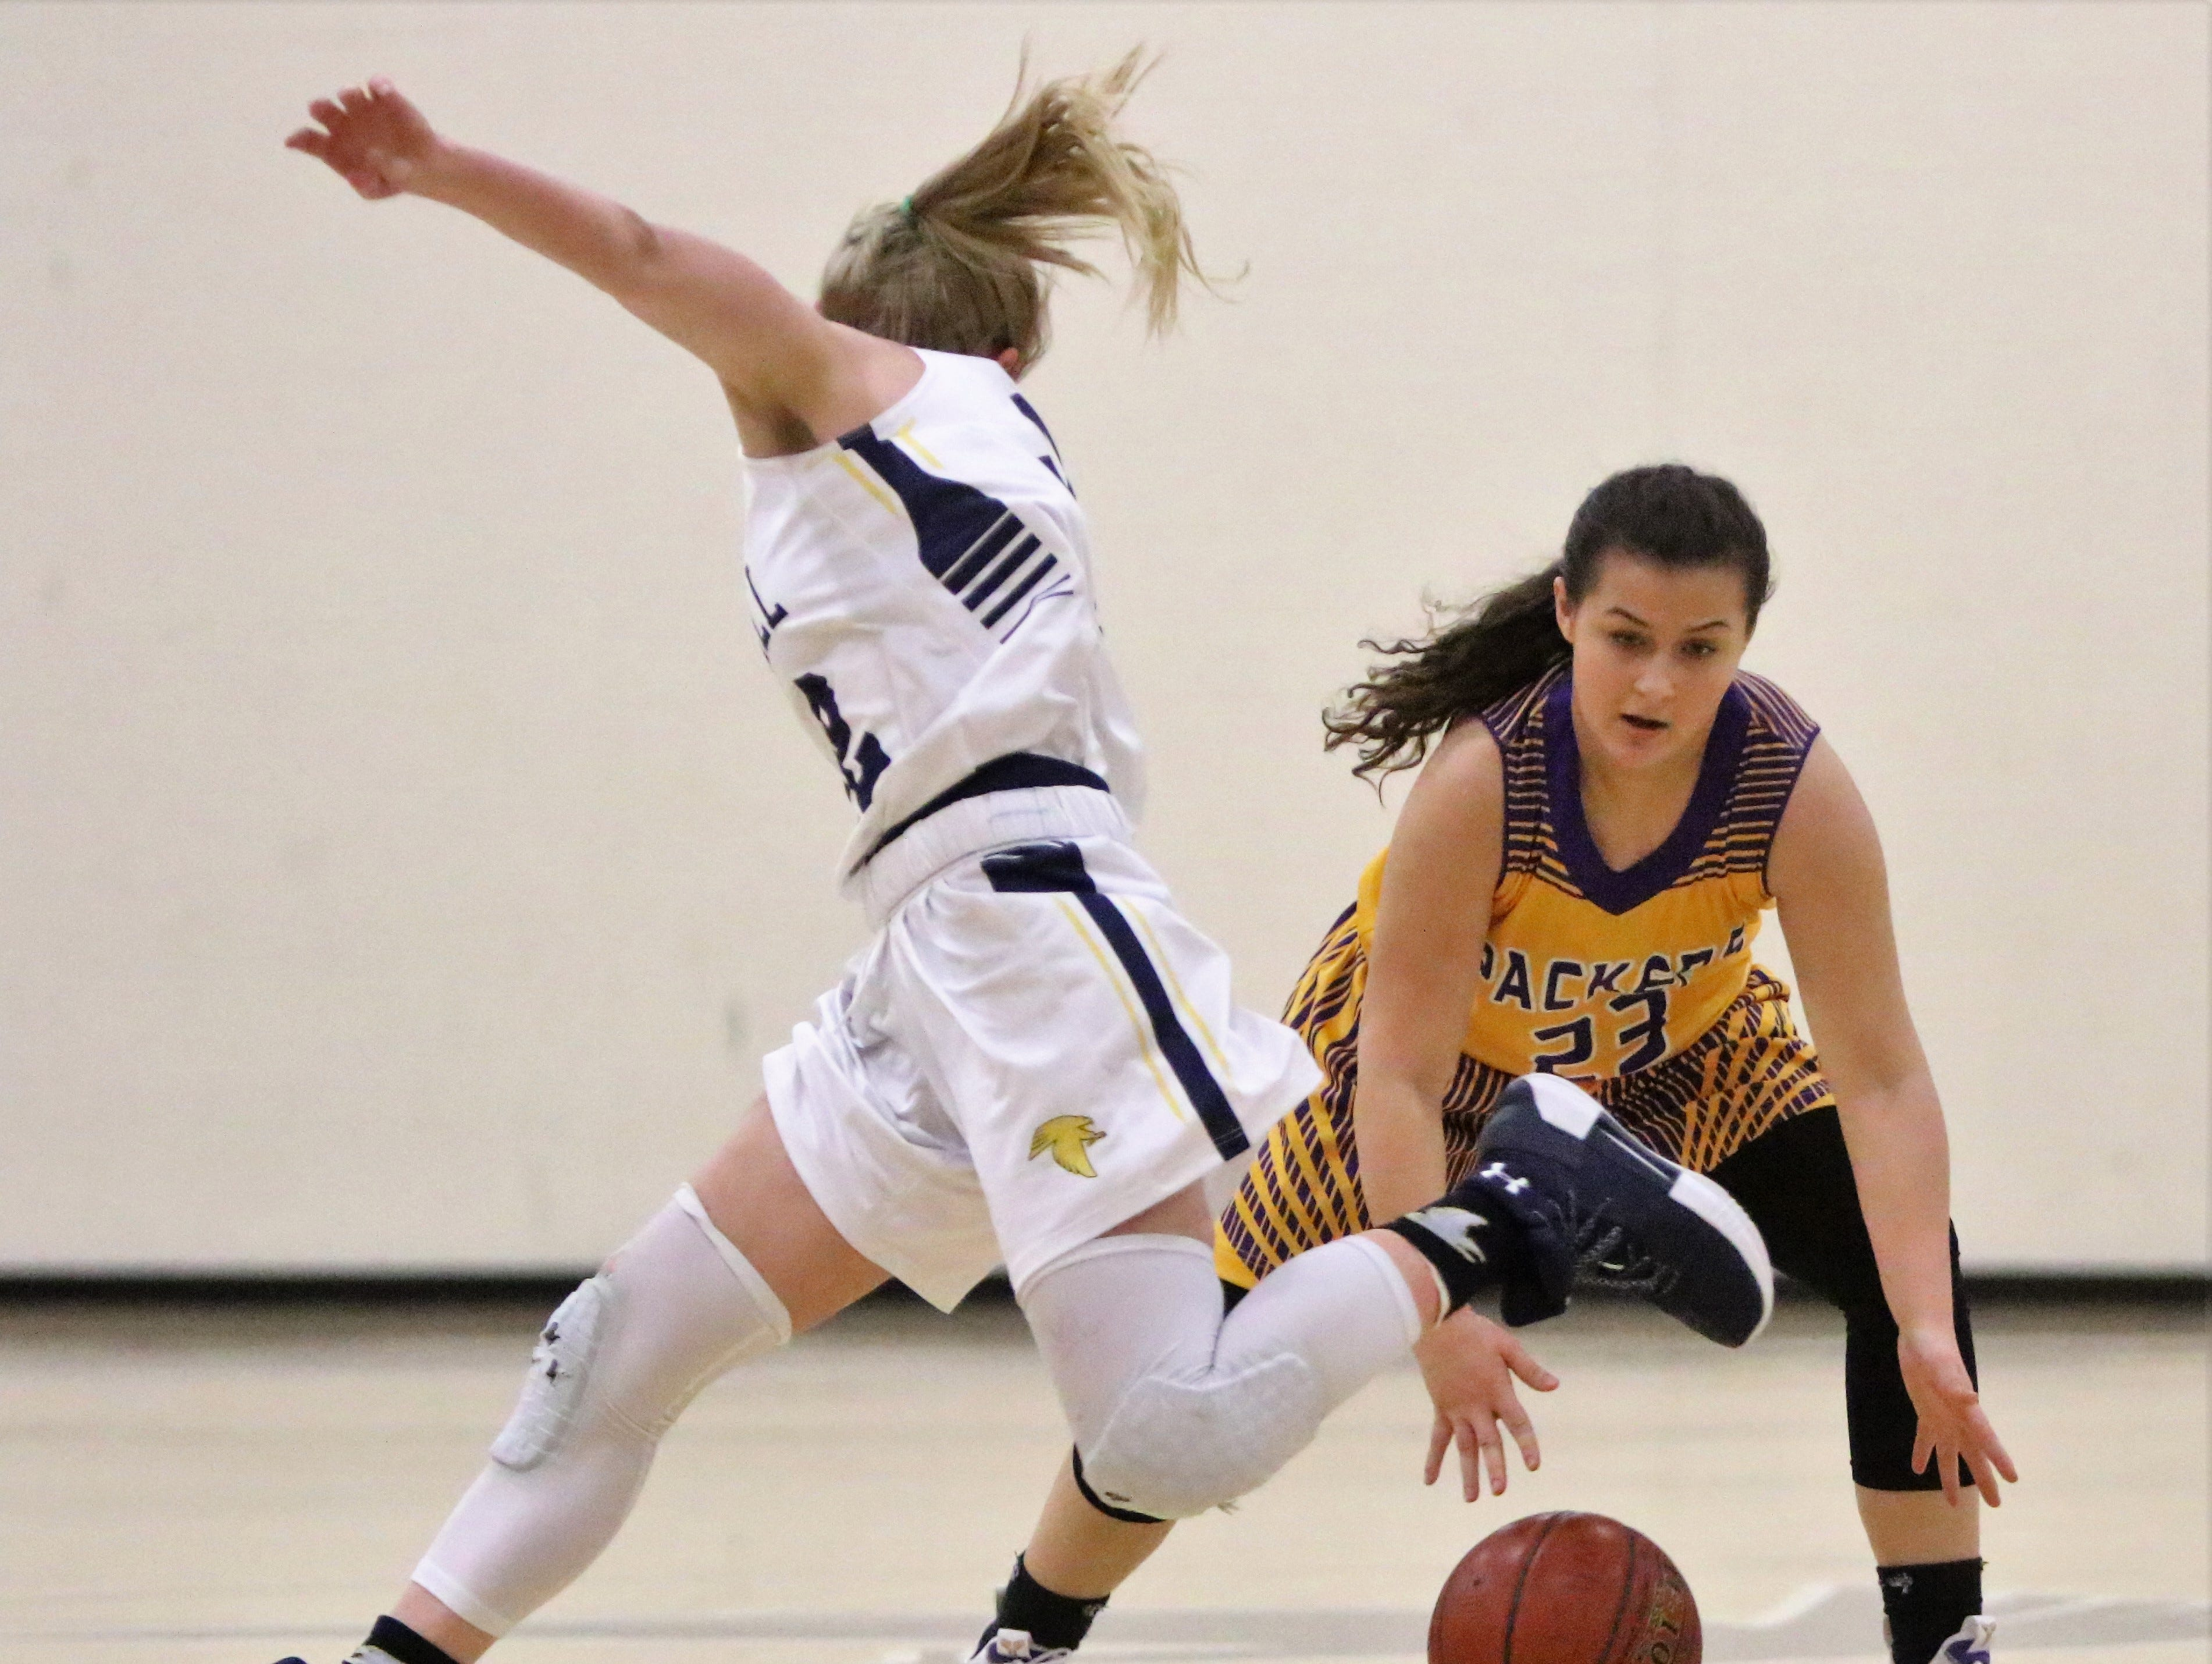 Cudahy guard Sarah Hansen cross over her dribble on a Whitnall defender during a game on Feb. 8, 2019.